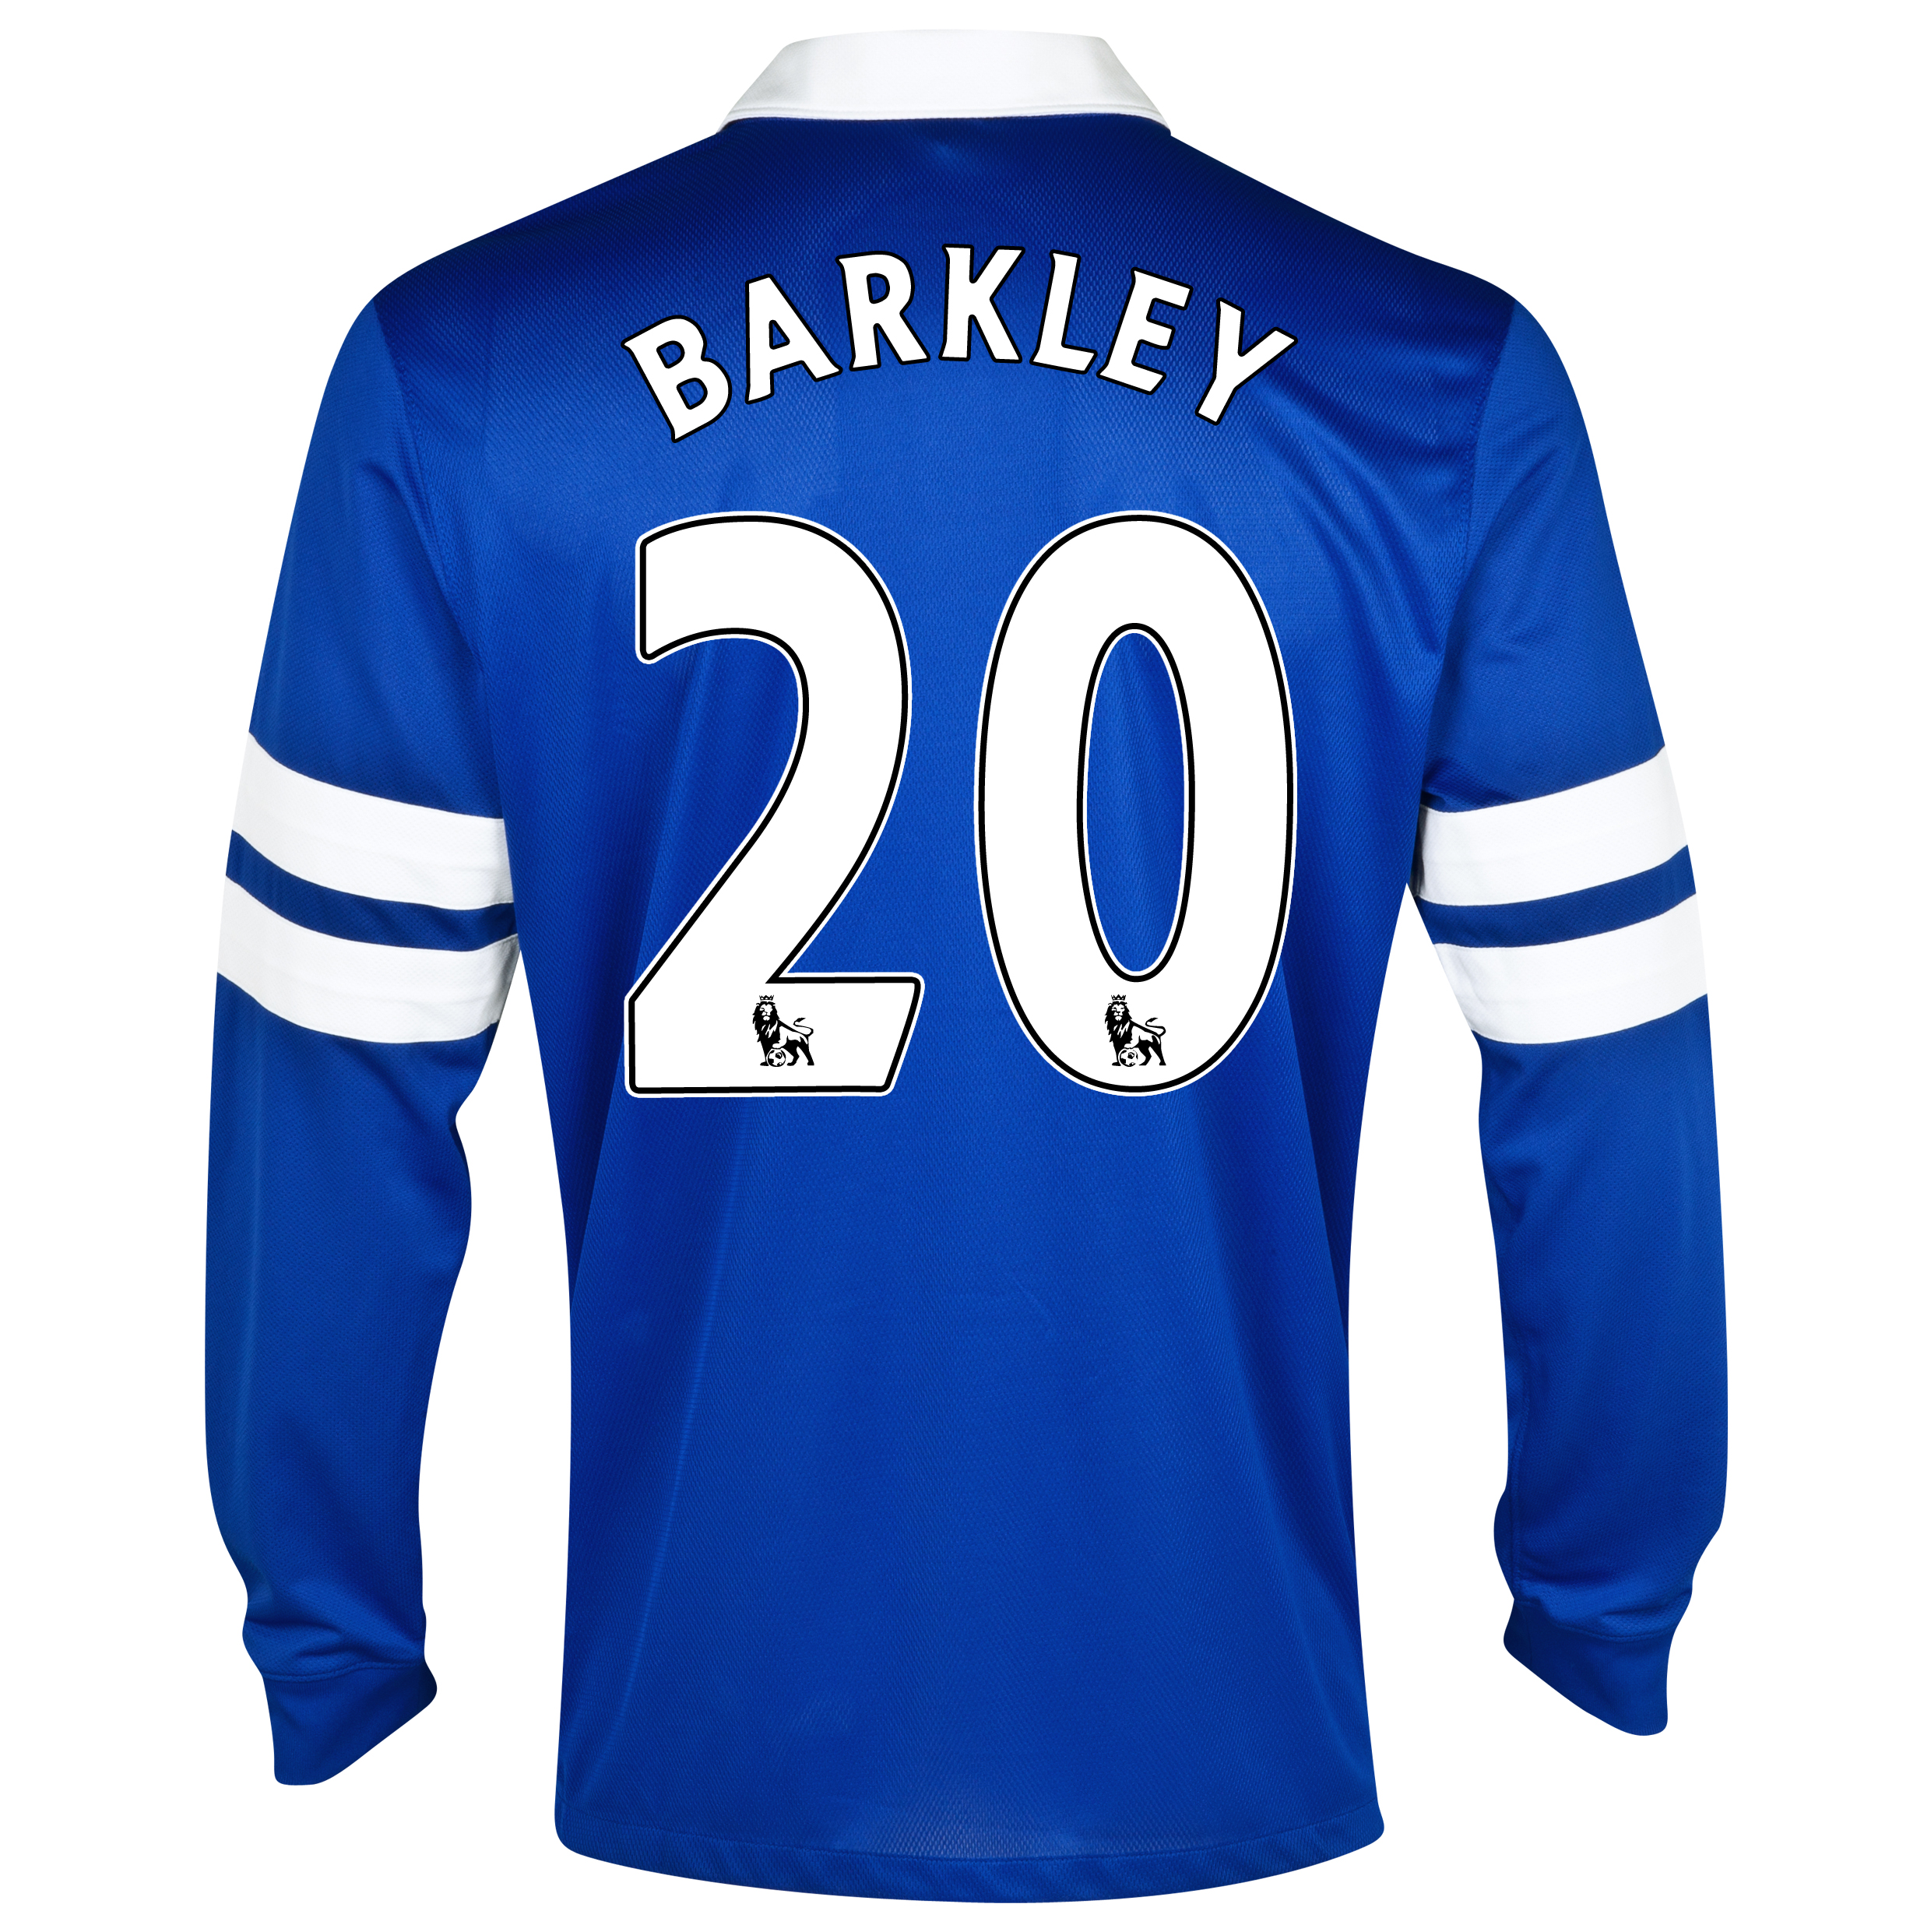 Everton Home Shirt 2013/14 - Junior - Long Sleeved Blue with Barkley 20 printing